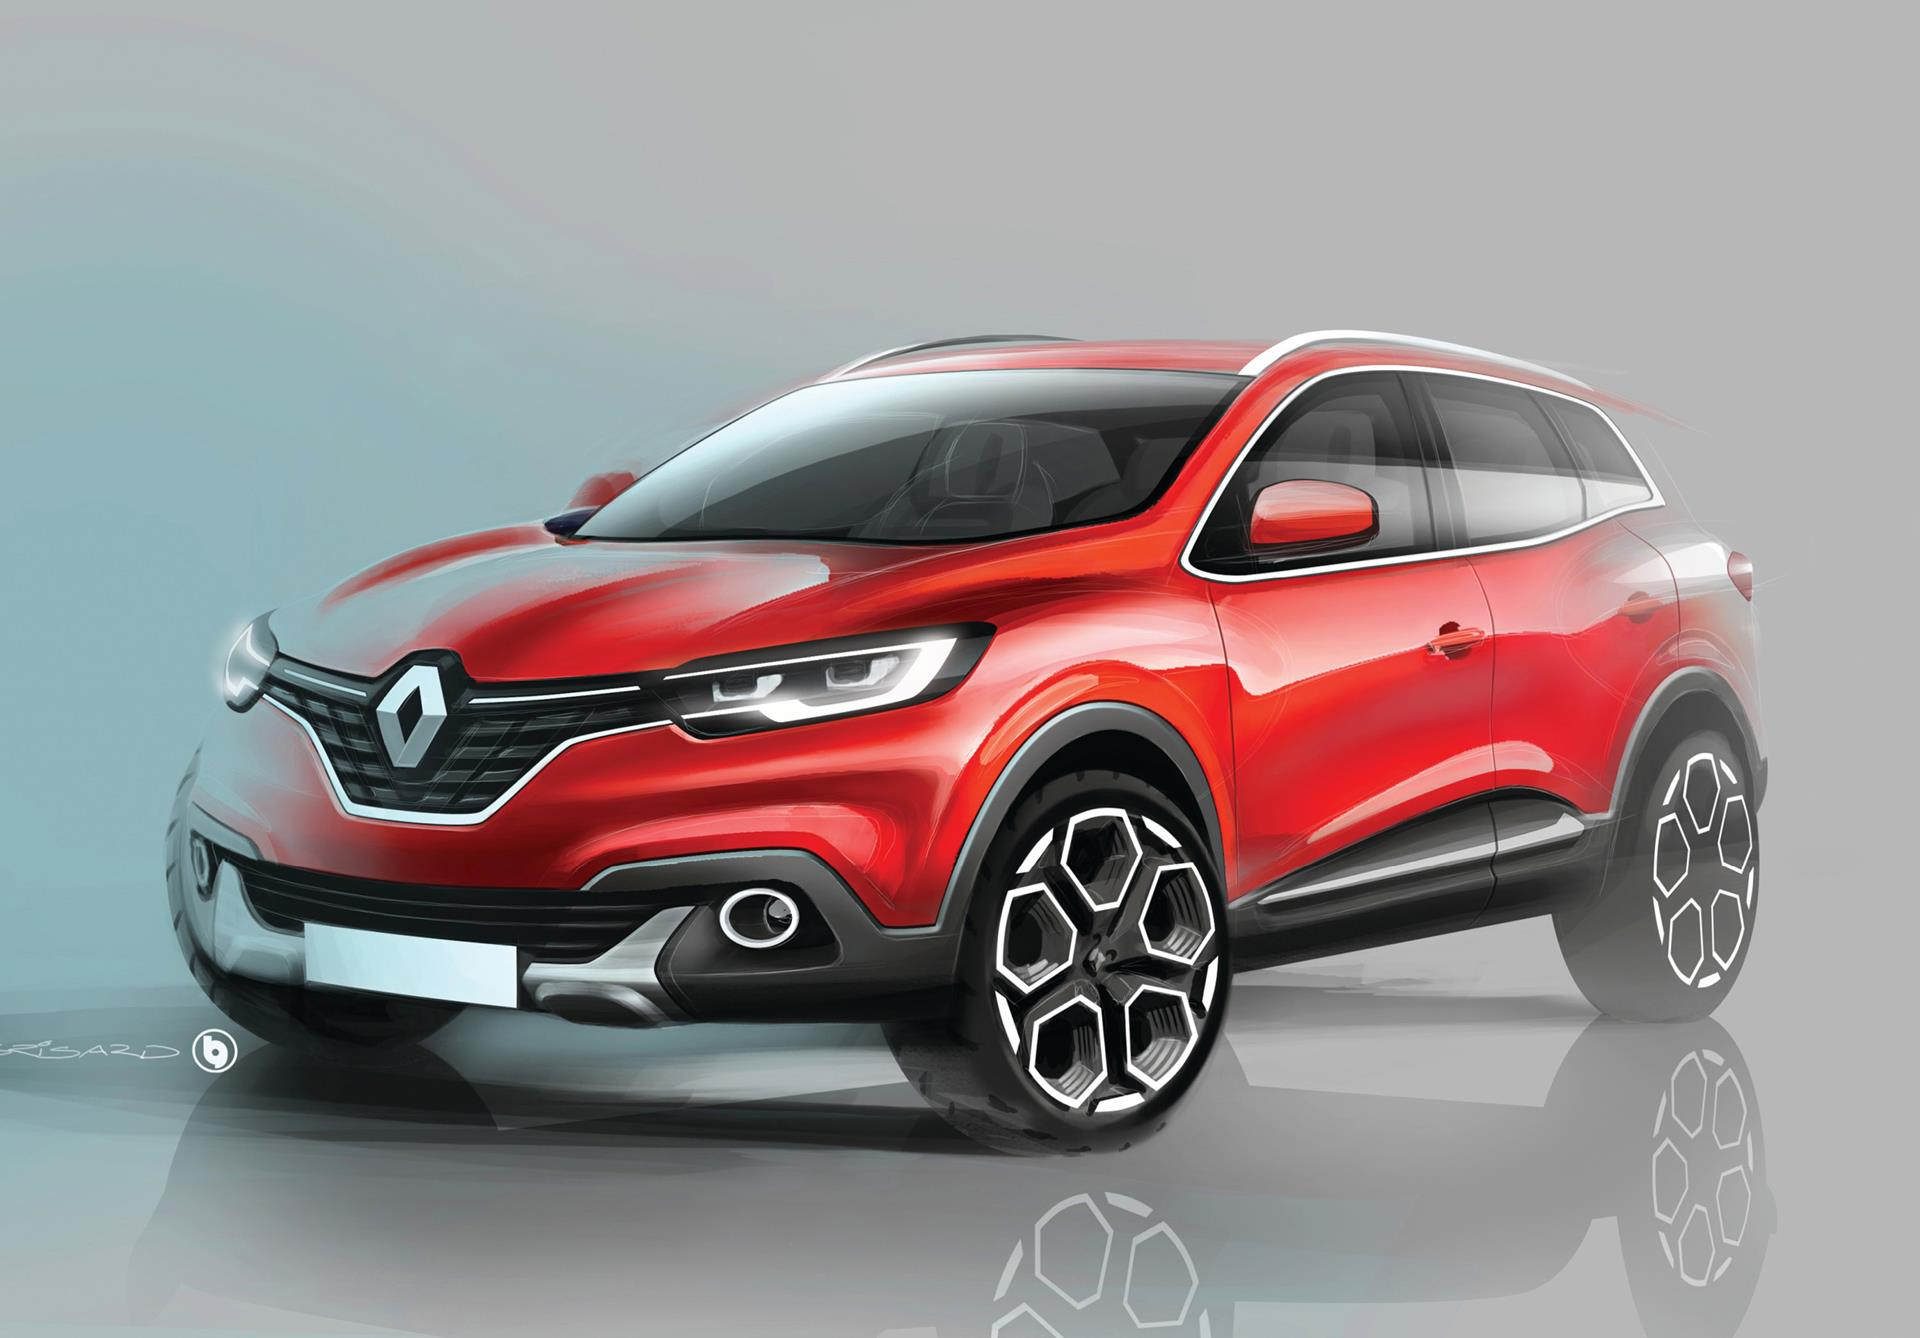 2015 renault kadjar. Black Bedroom Furniture Sets. Home Design Ideas